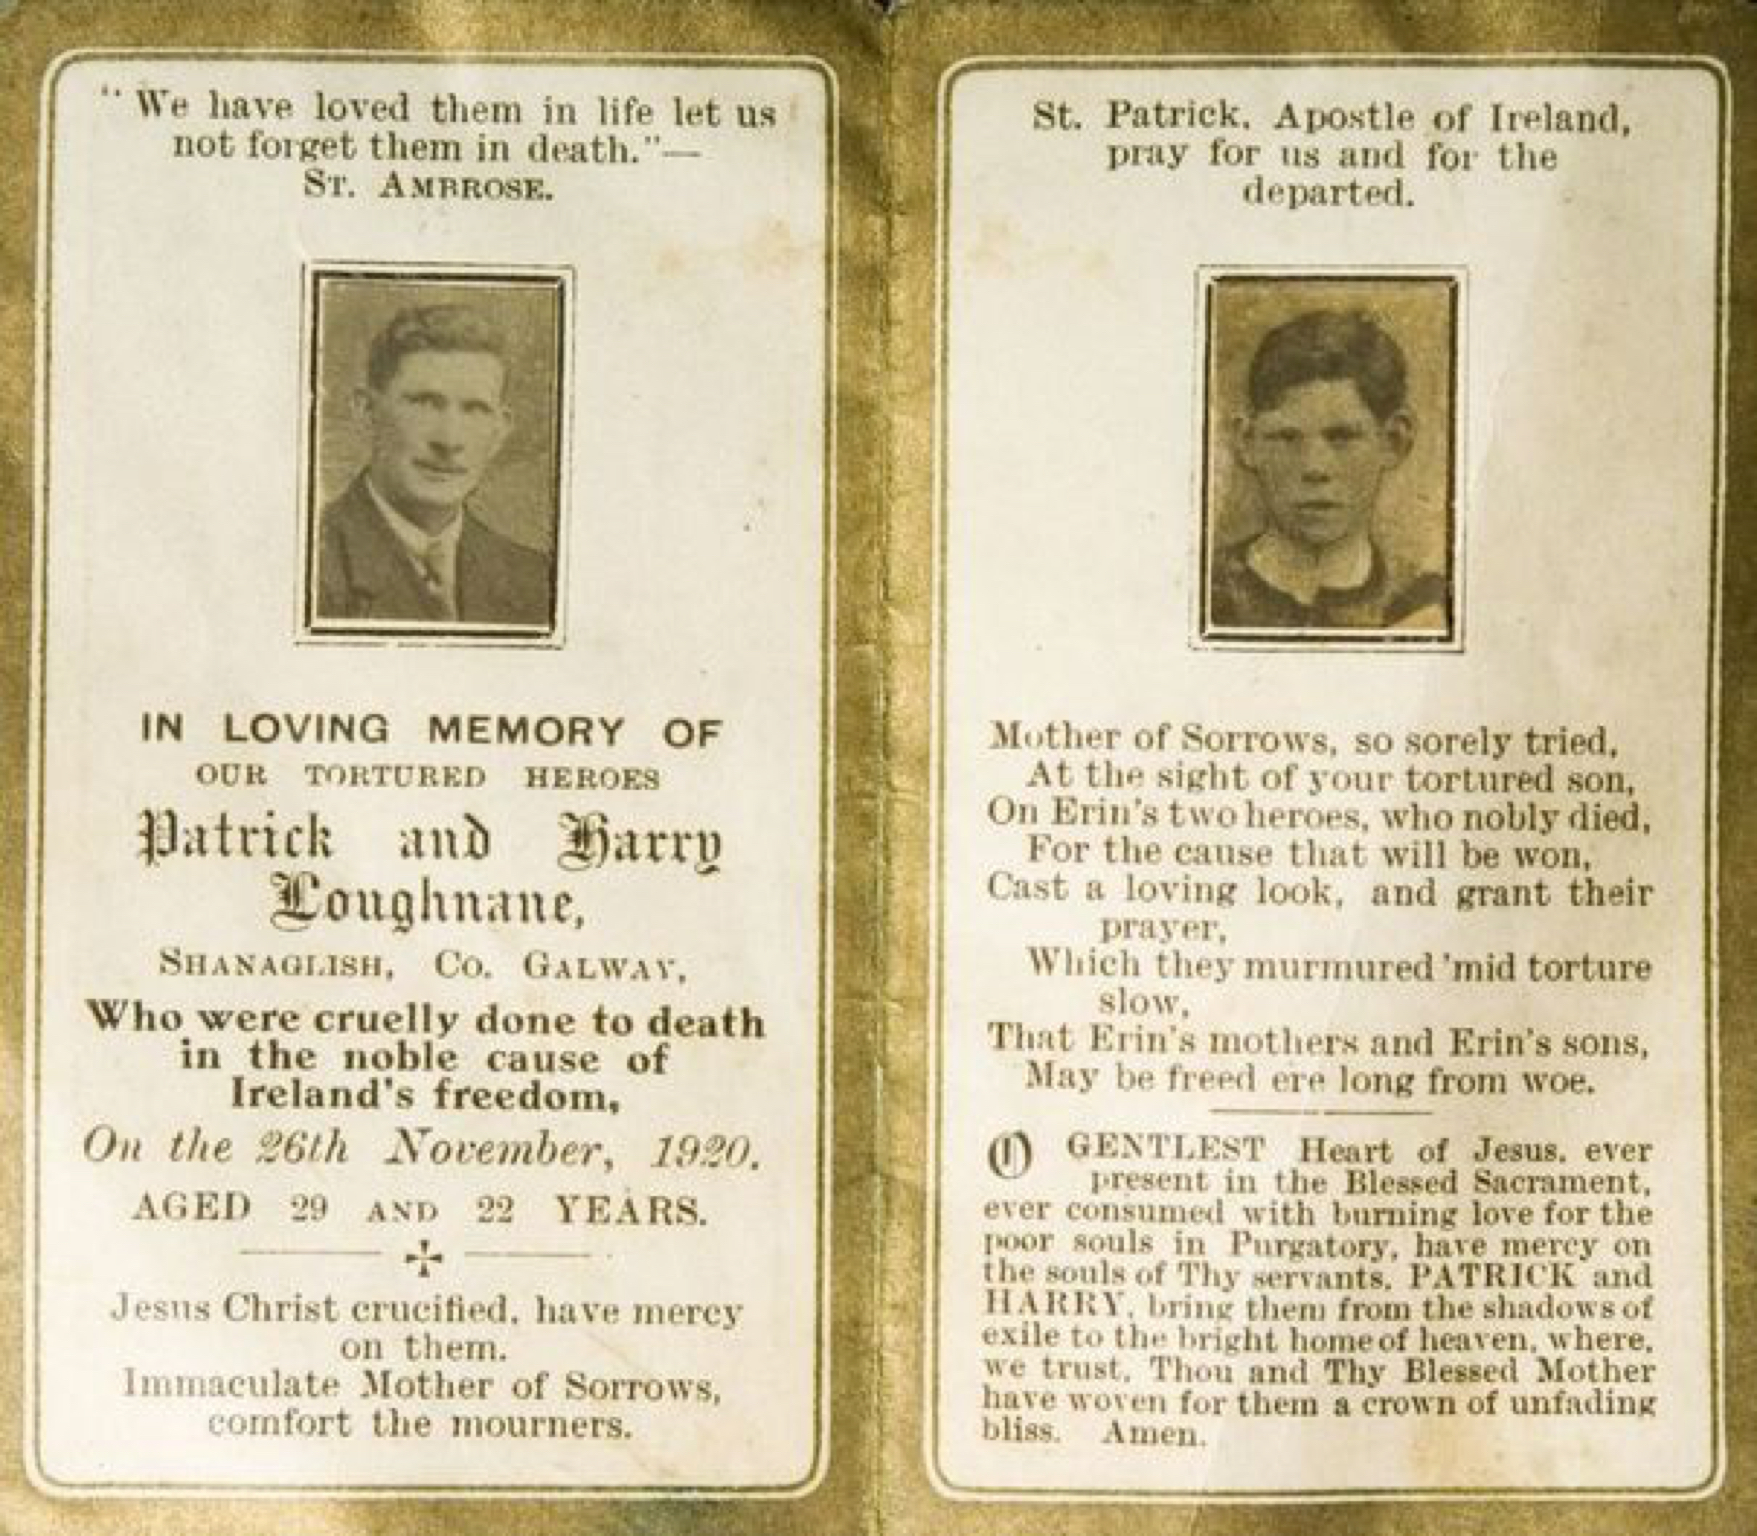 The tragic story of Patrick and Harry Loughnane